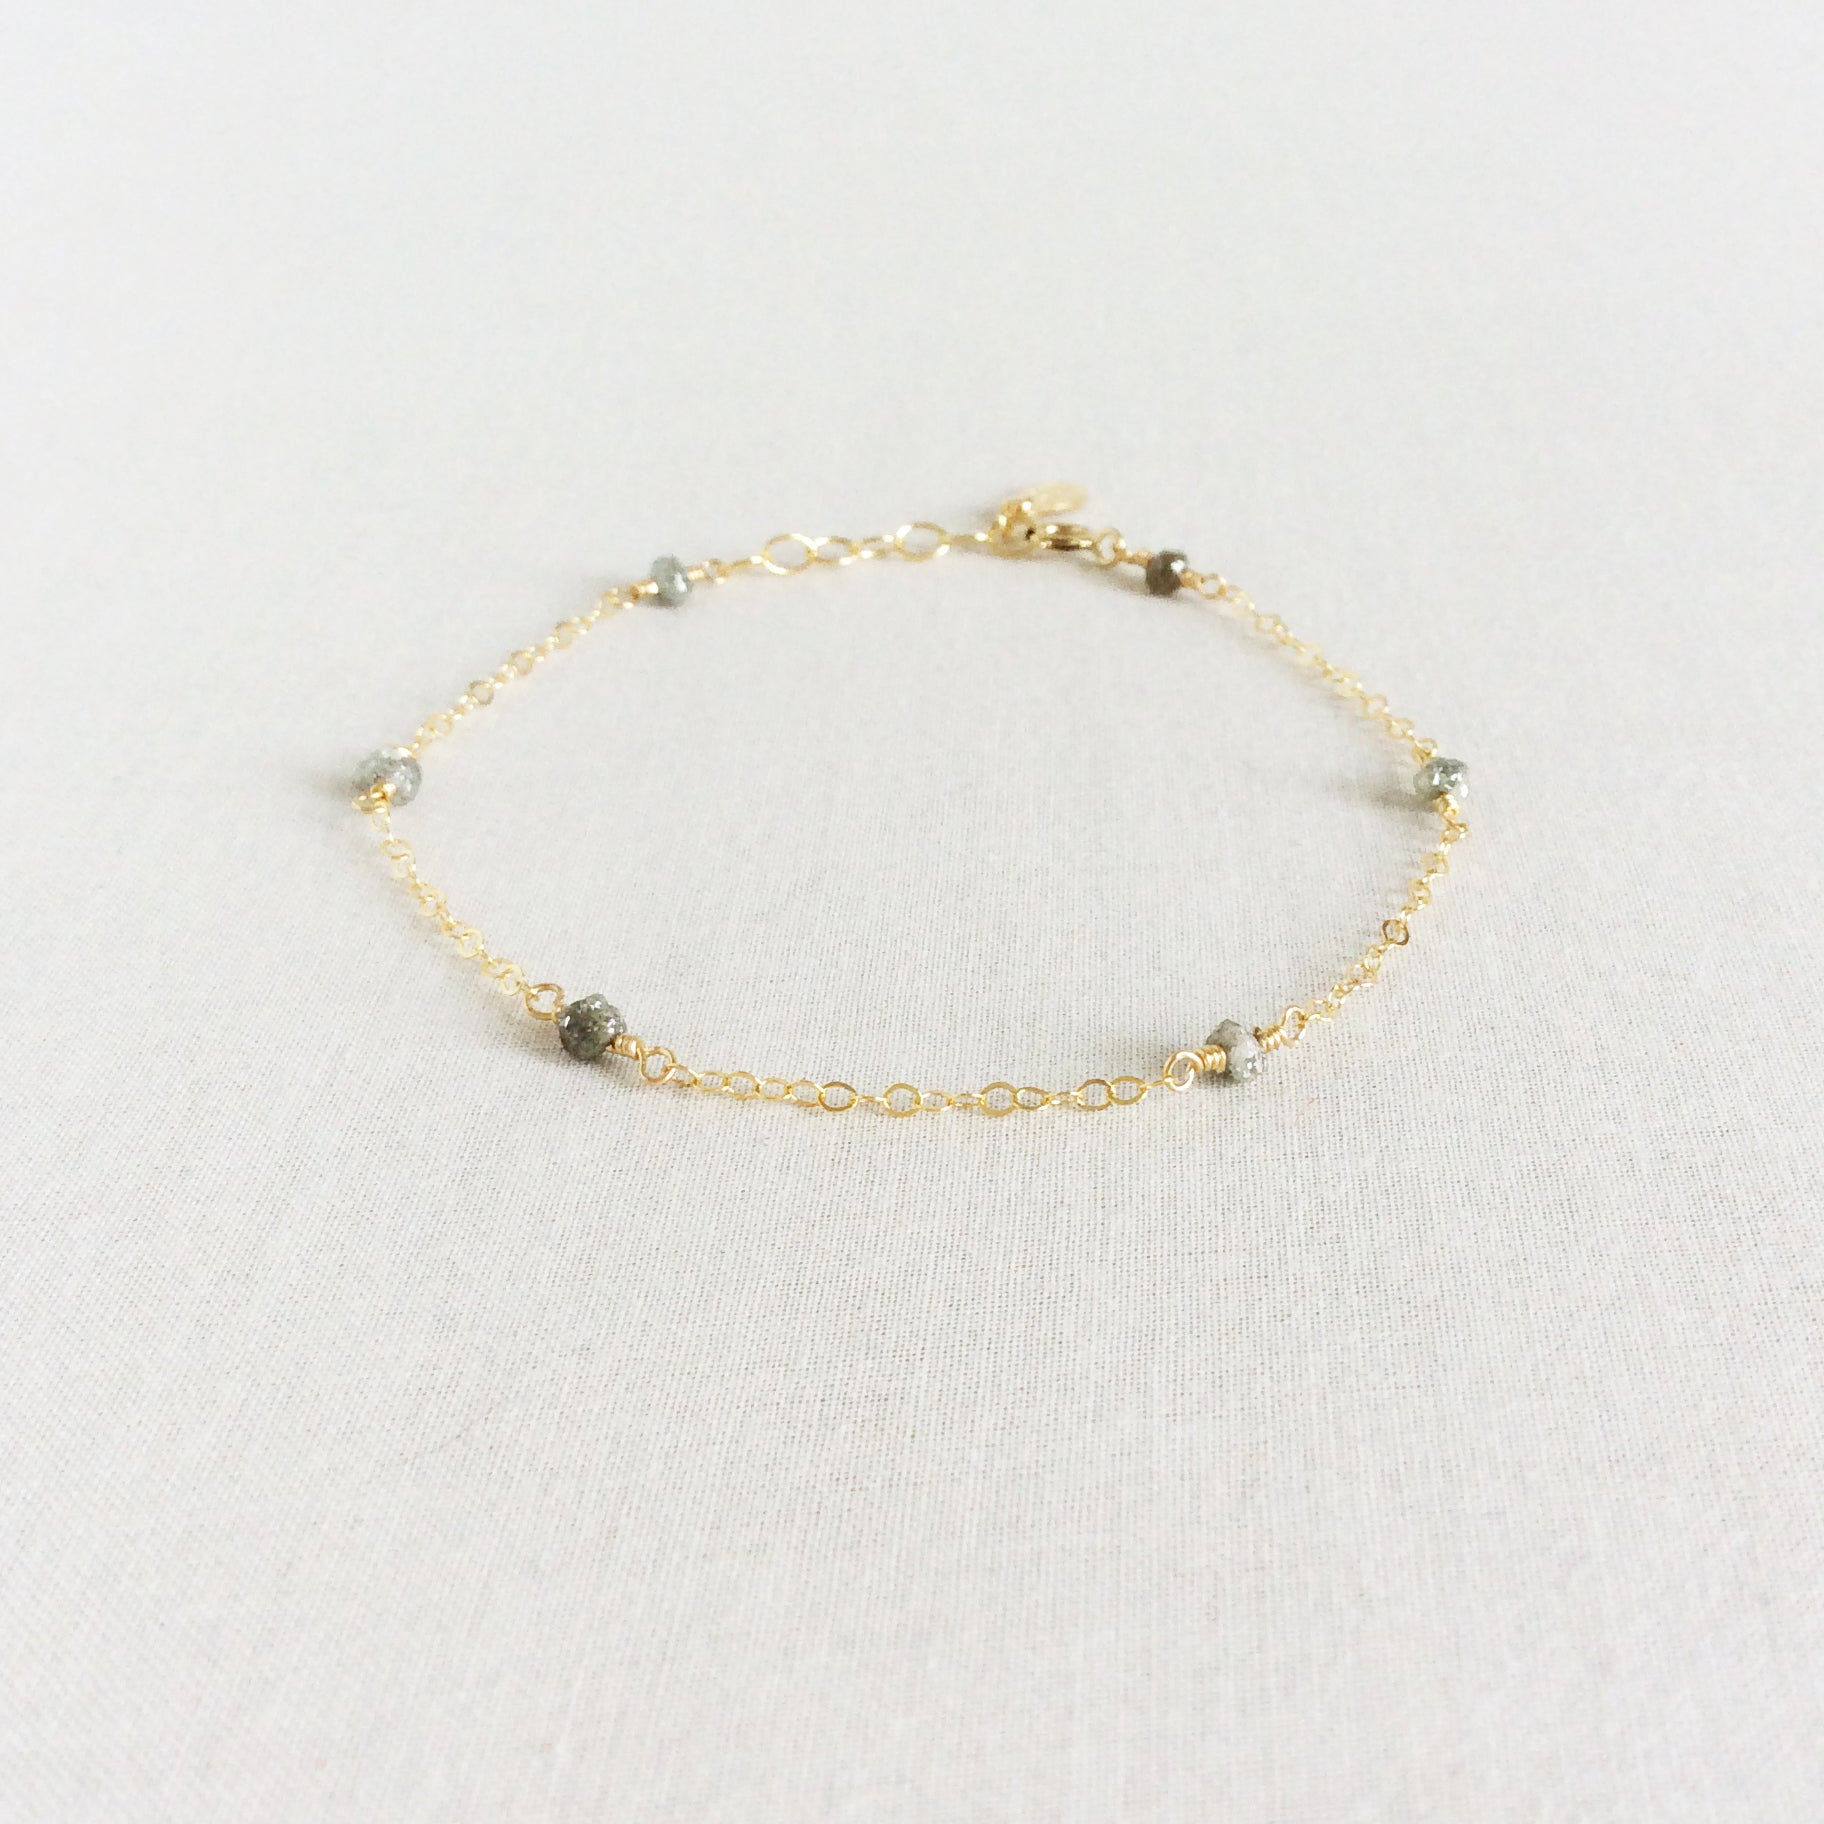 dainty rough diamond bracelet with adjustable chain in 14k or gold filled